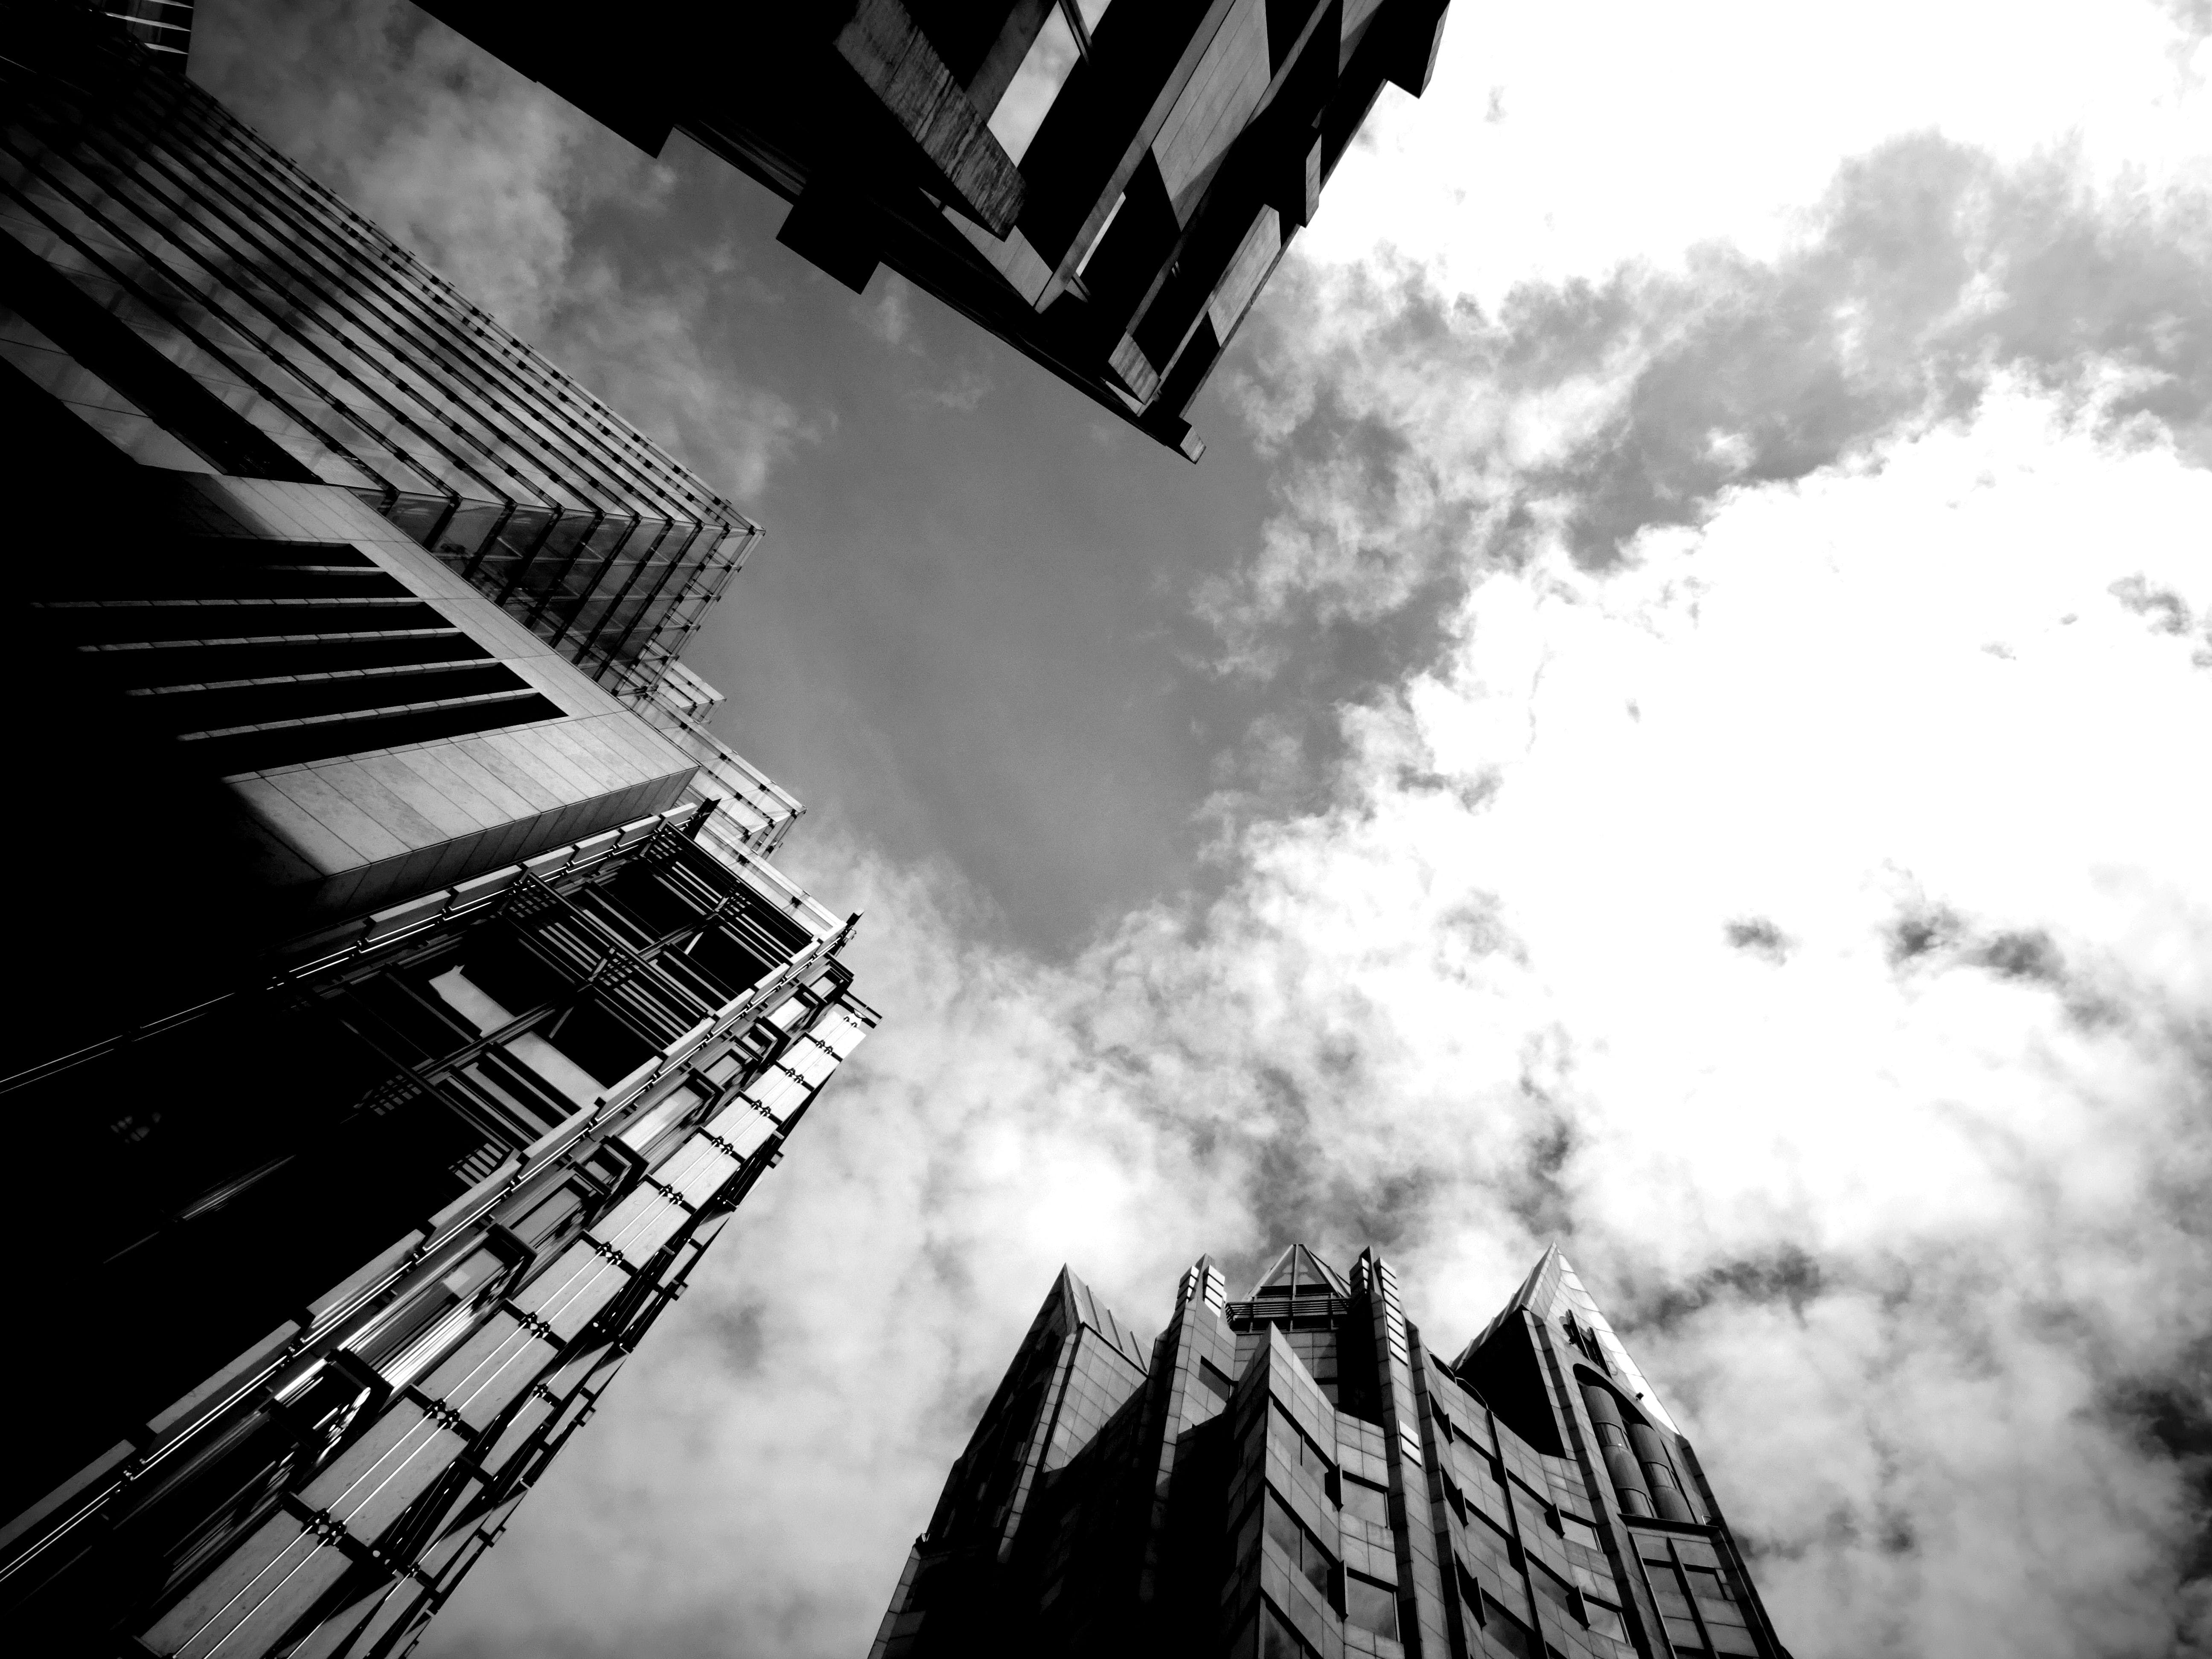 Grayscale and Low Angle Photography of High-rise Building